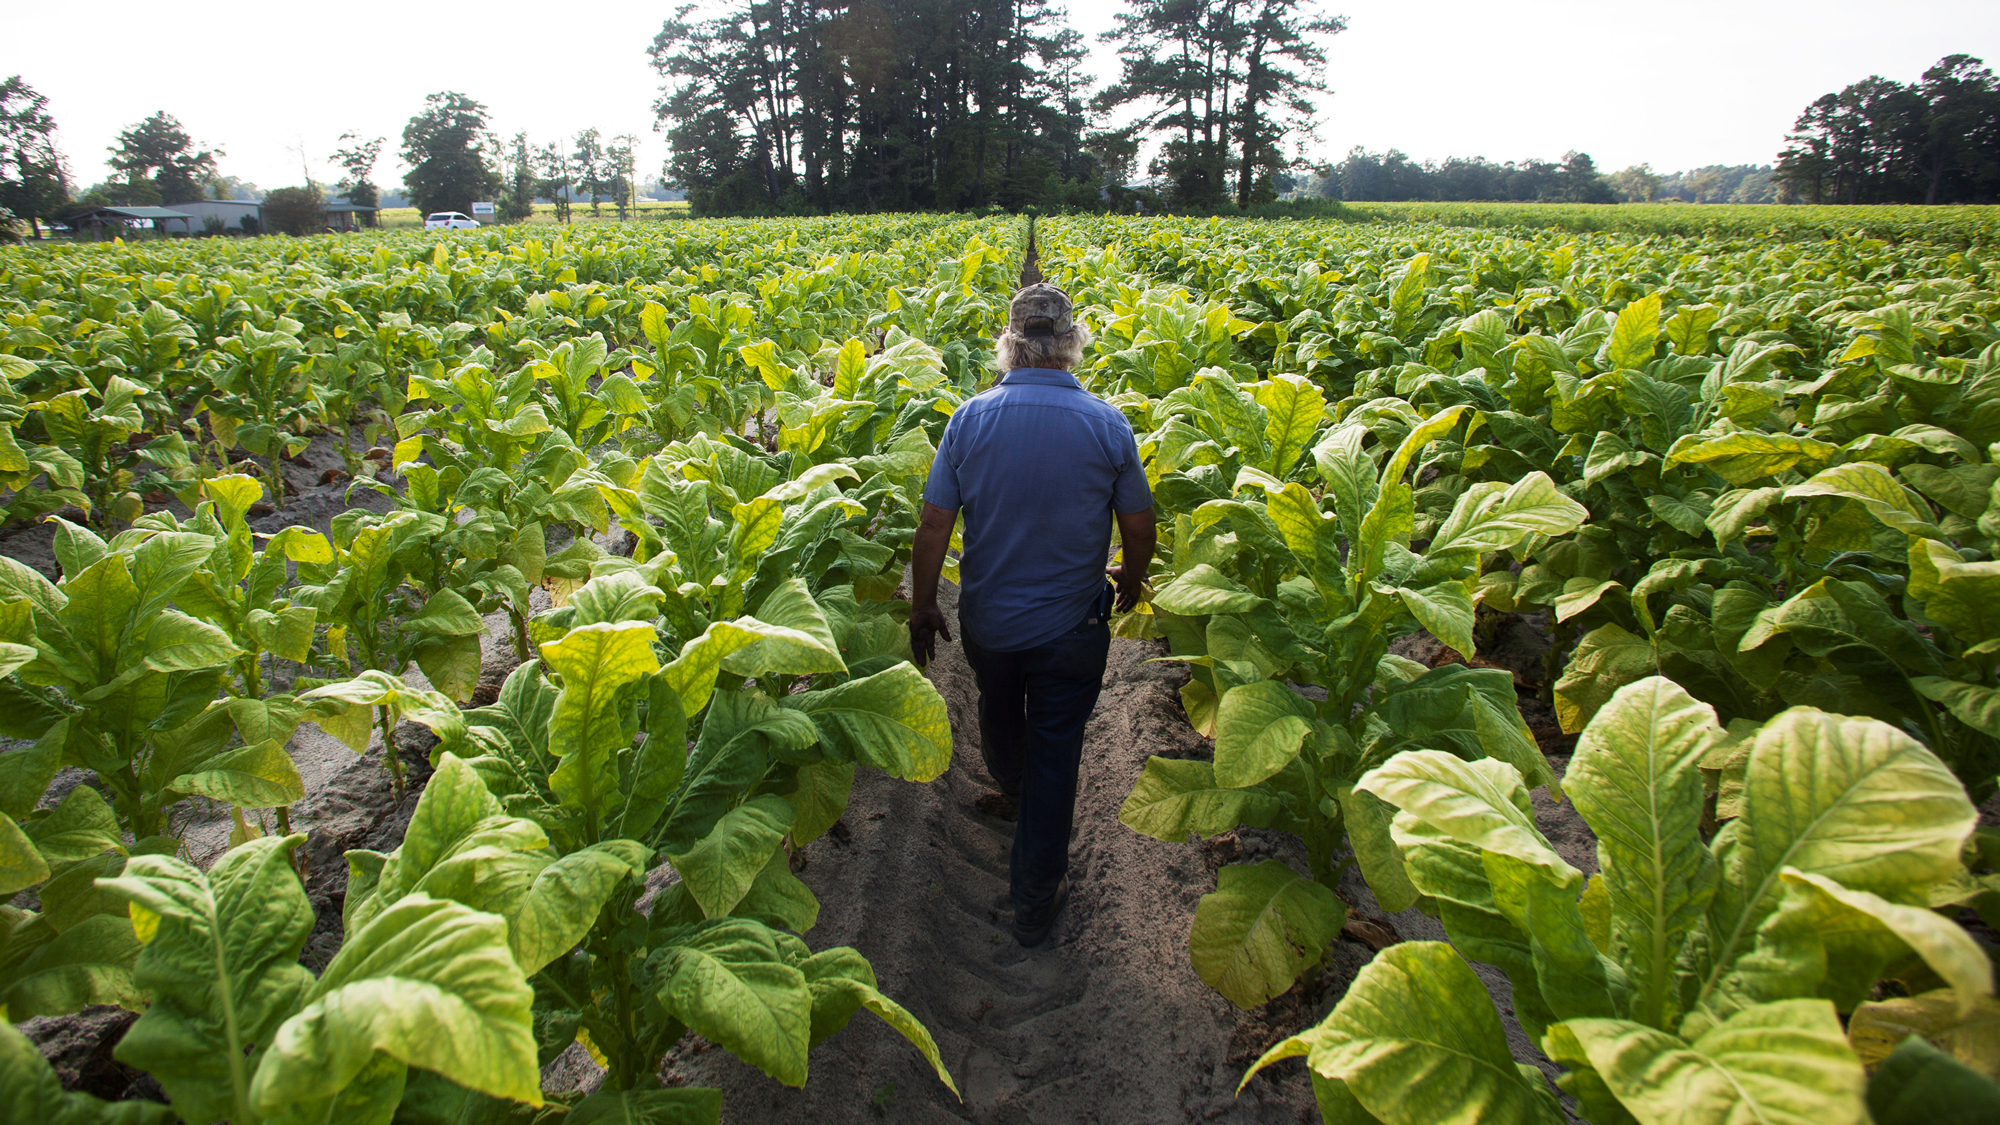 A farmer walks away from the camera through a field of rich green tobacco plants.